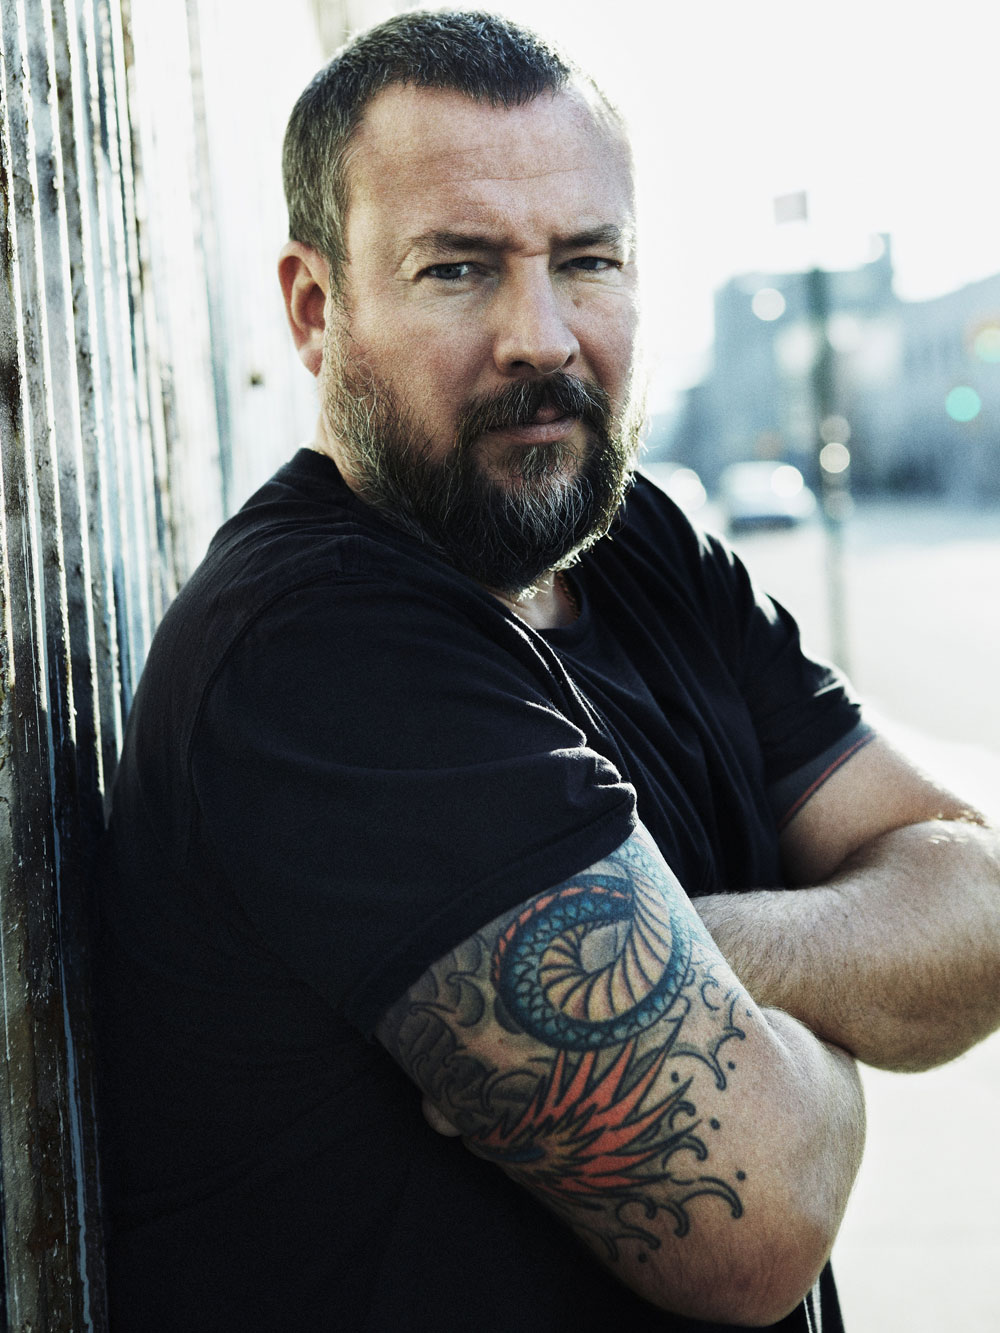 "Shane Smith is a Canadian journalist and web entrepreneur. He is the co-founder and CEO of  Vice , originally founded as the youth magazine  Voice of Montréal  in 1994. After initially publishing articles based on offbeat alternative and drug culture,  Vice  moved to creating news content and social criticism.  The New York Times  has described him as ""a cross between a punk rocker and Fortune 500 executive.""  In 2013, 21st Century Fox sunk $70 million into  Vice  for a 5% stake in the company. That means the notional value of  Vice  as a whole is $1.4 billion—about six times as much as the  Washington Post , and almost as much as  The New York Times ."